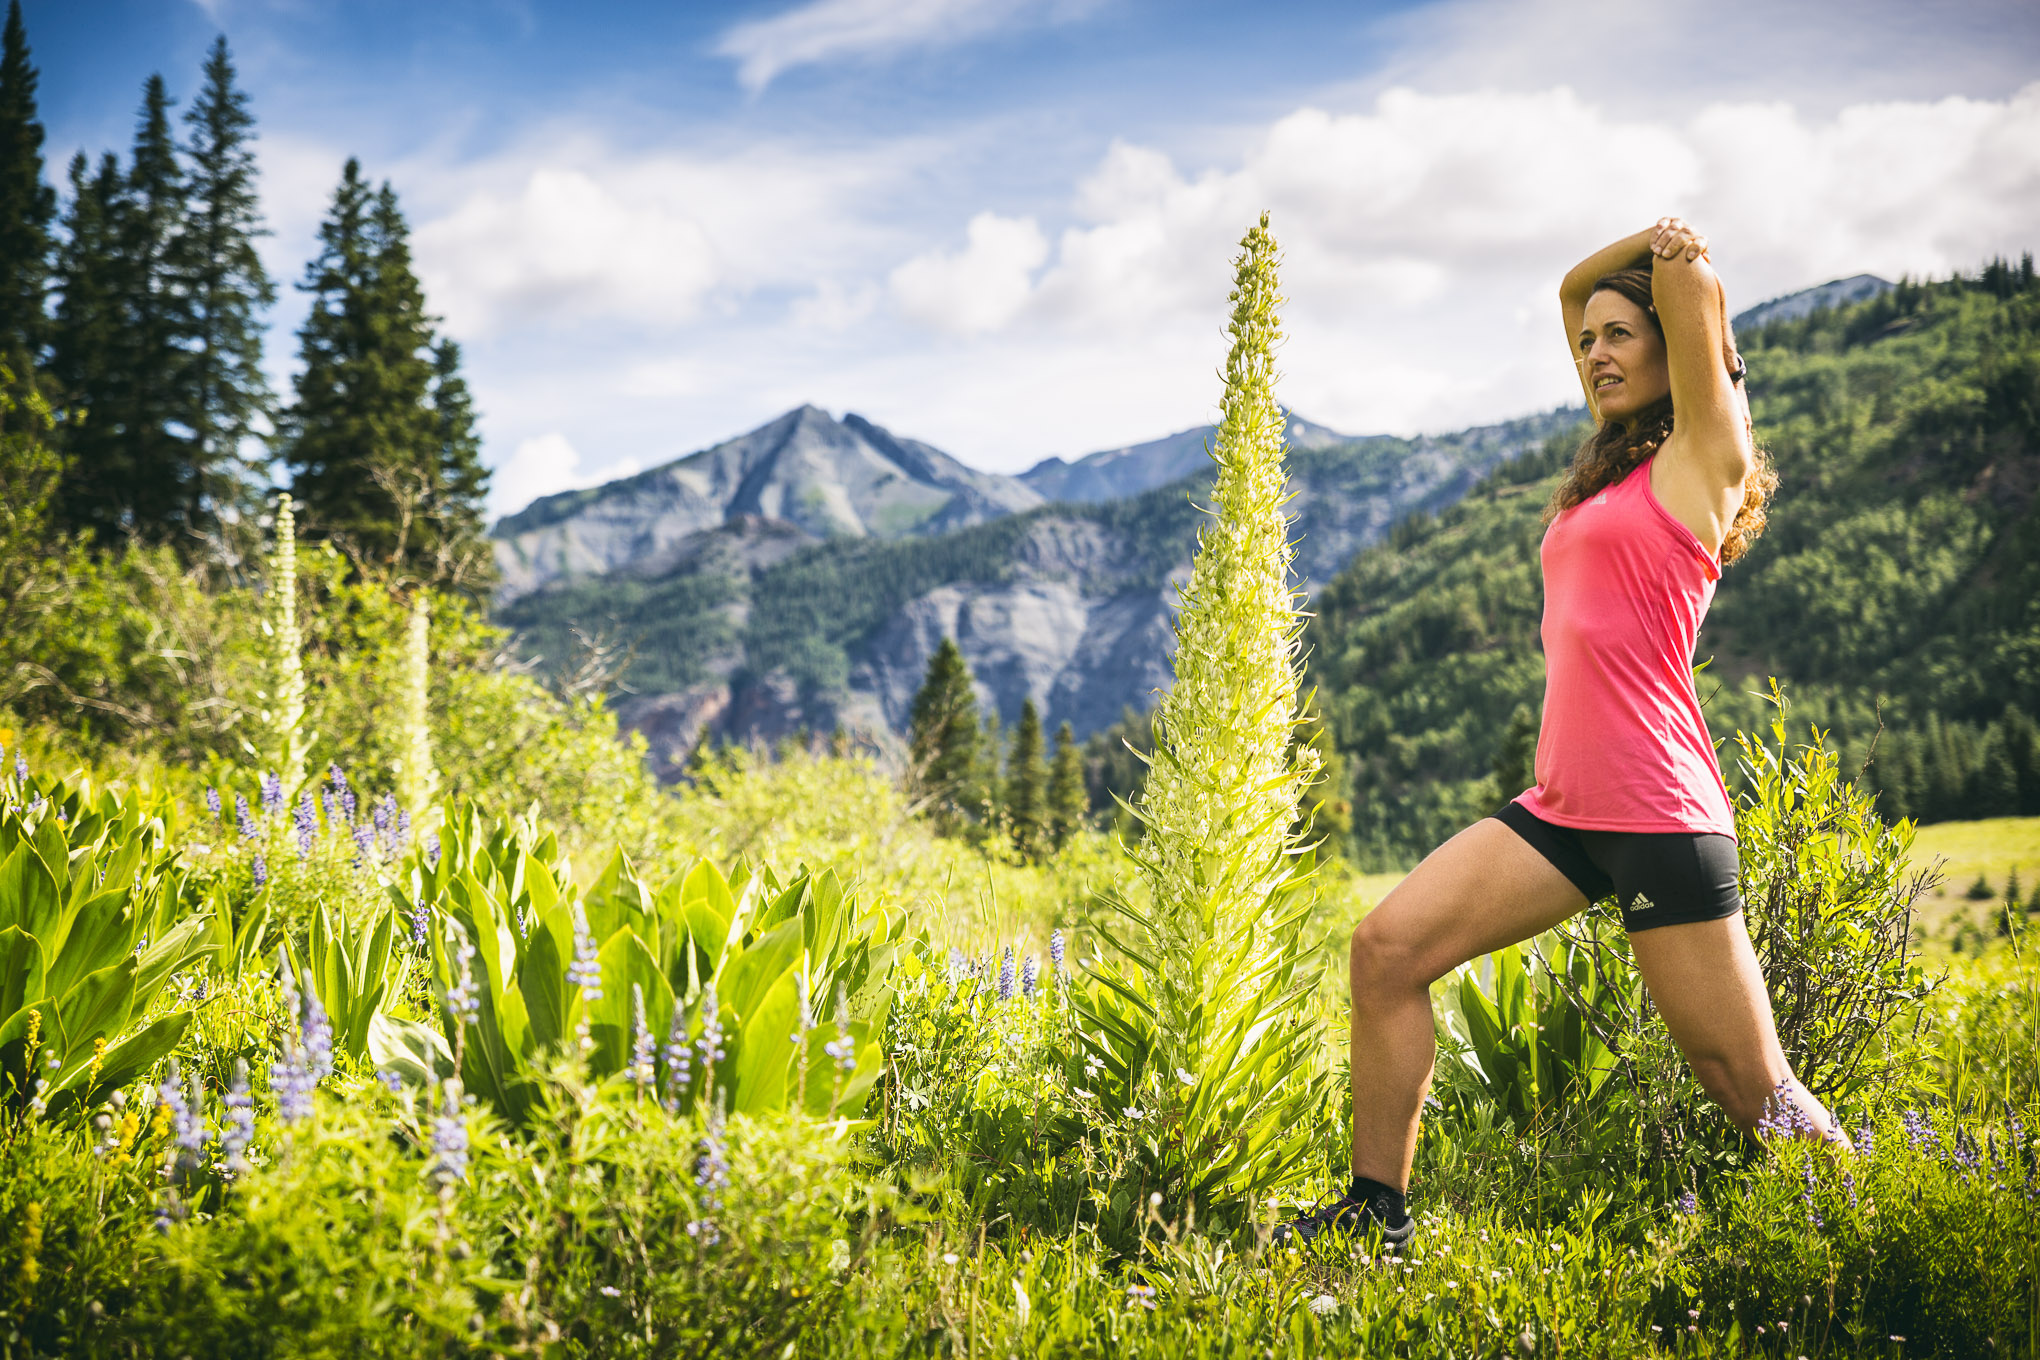 Unplug, look around, stretch. Photo taken last summer in Ouray, Colorado, by James Richard Kao.